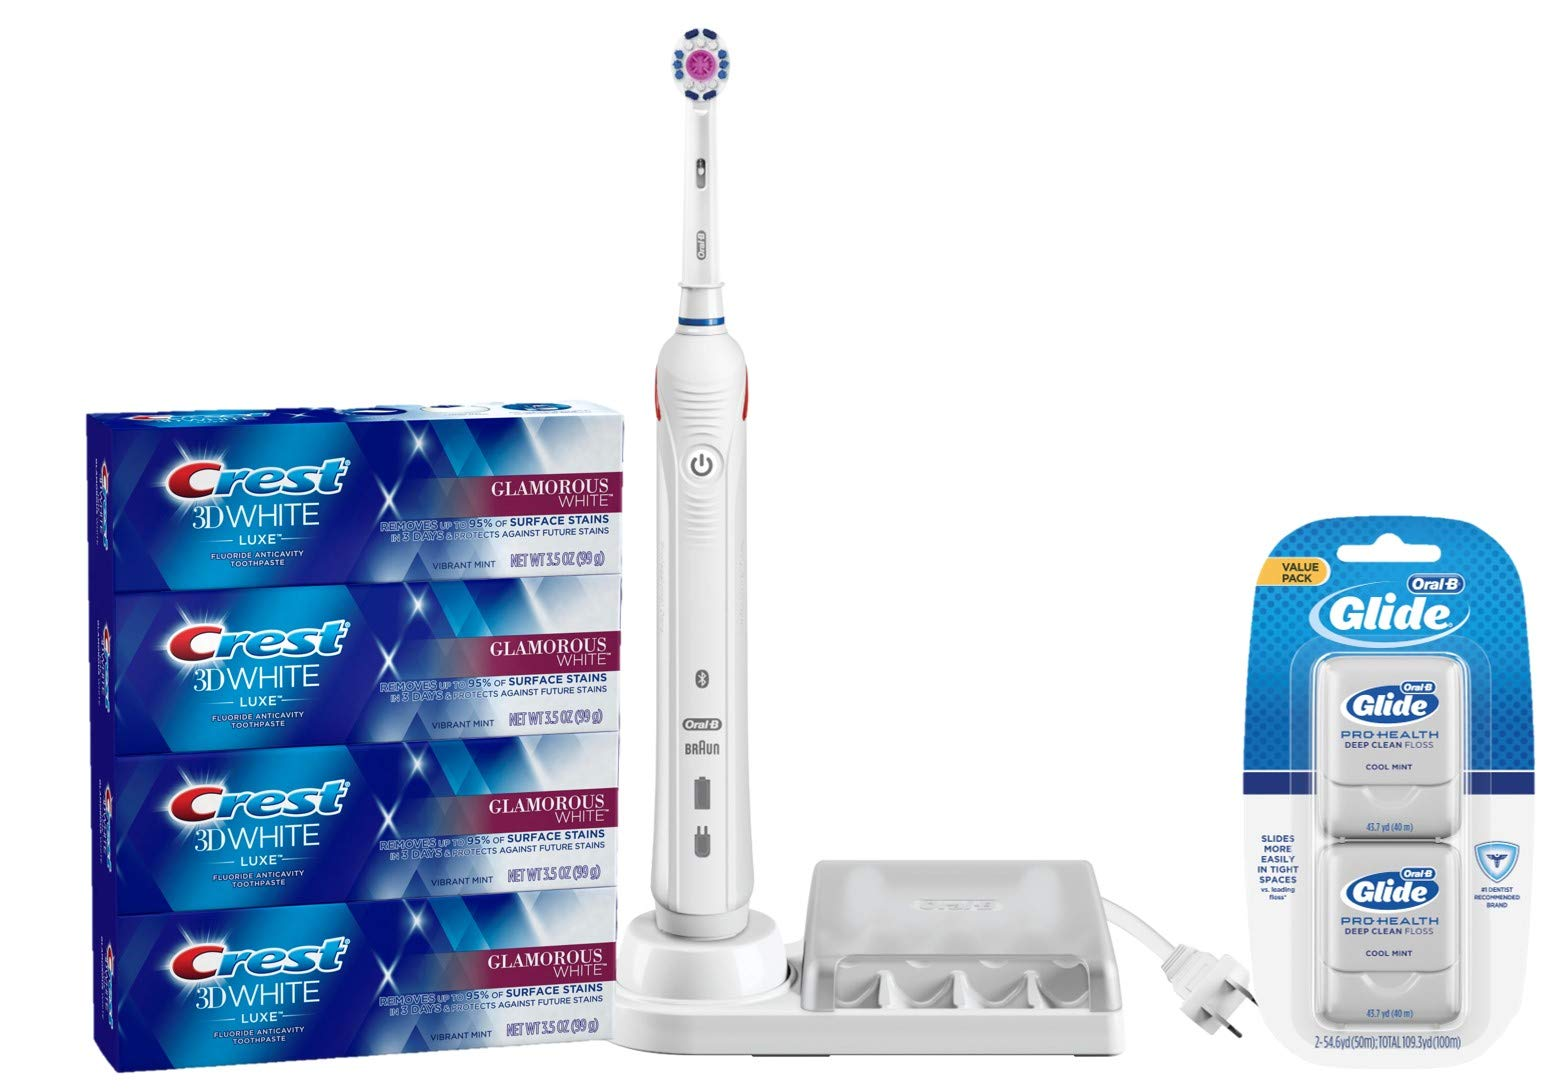 Oral-B Pro3000  Electric Toothbrush with Crest Toothpaste Four Pack and Glide Floss Twin Pack Bundle